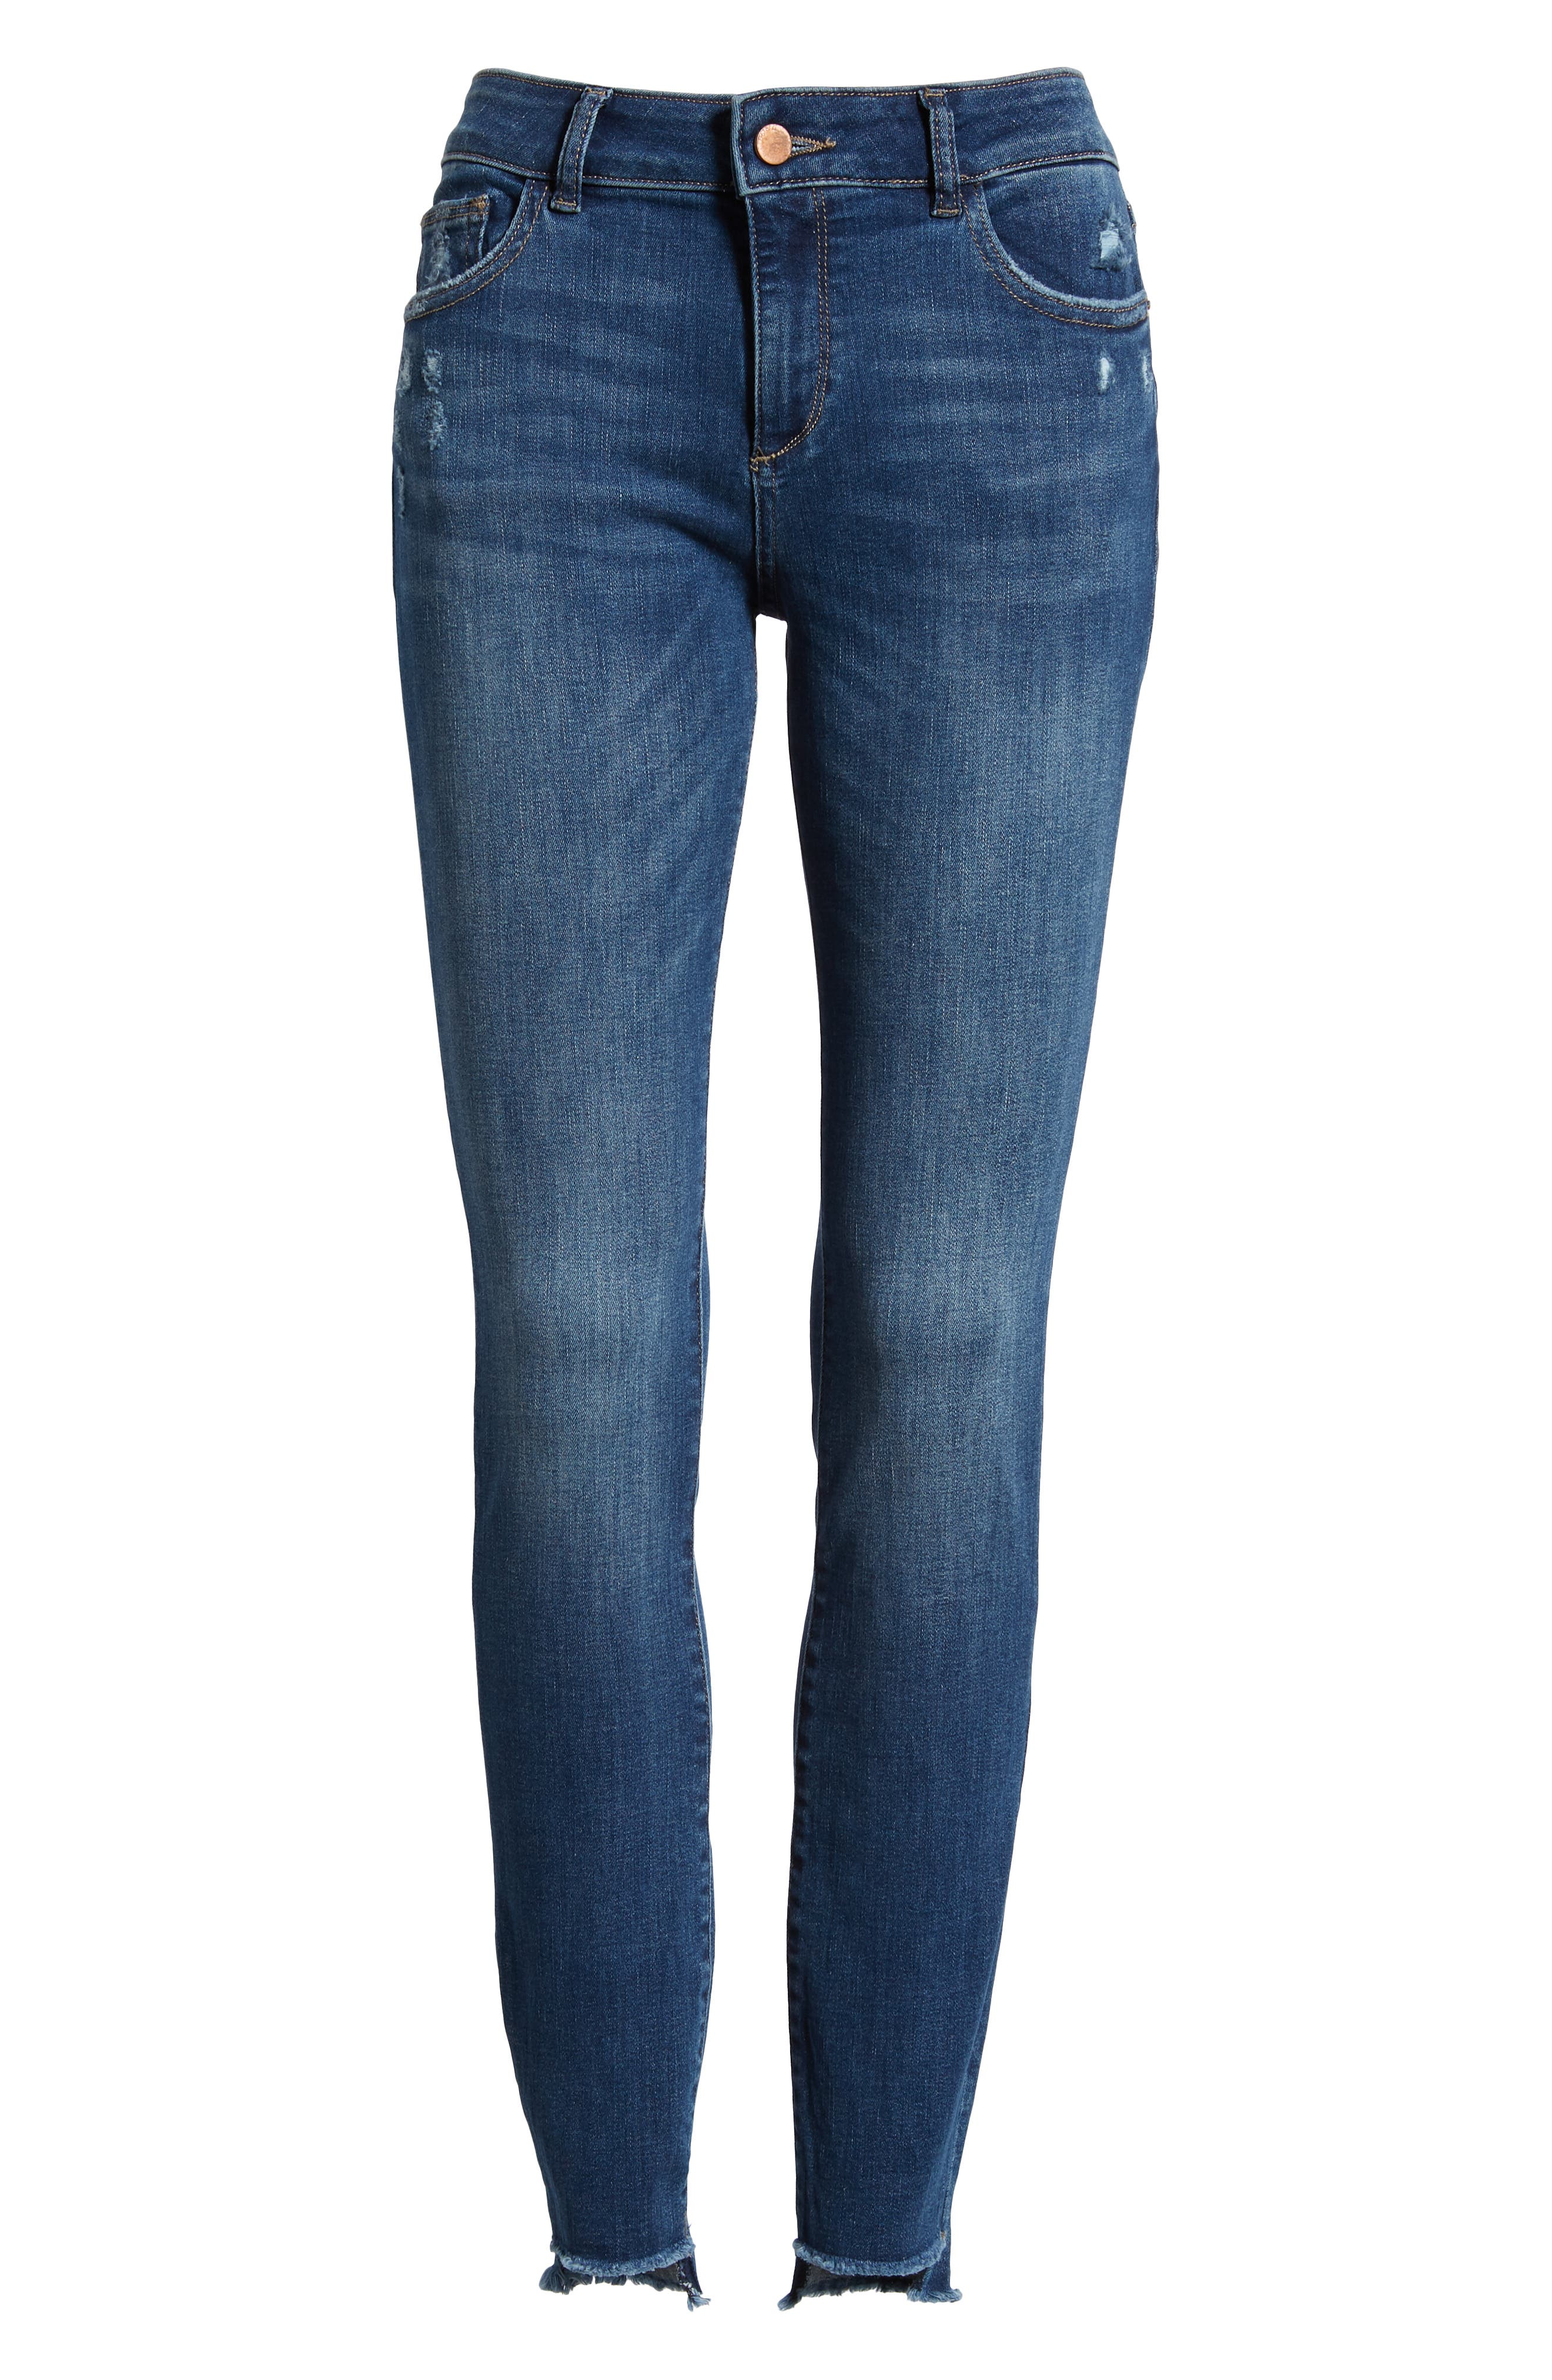 Florence Instasculpt High Waist Raw Step Hem Skinny Jeans,                             Alternate thumbnail 7, color,                             405